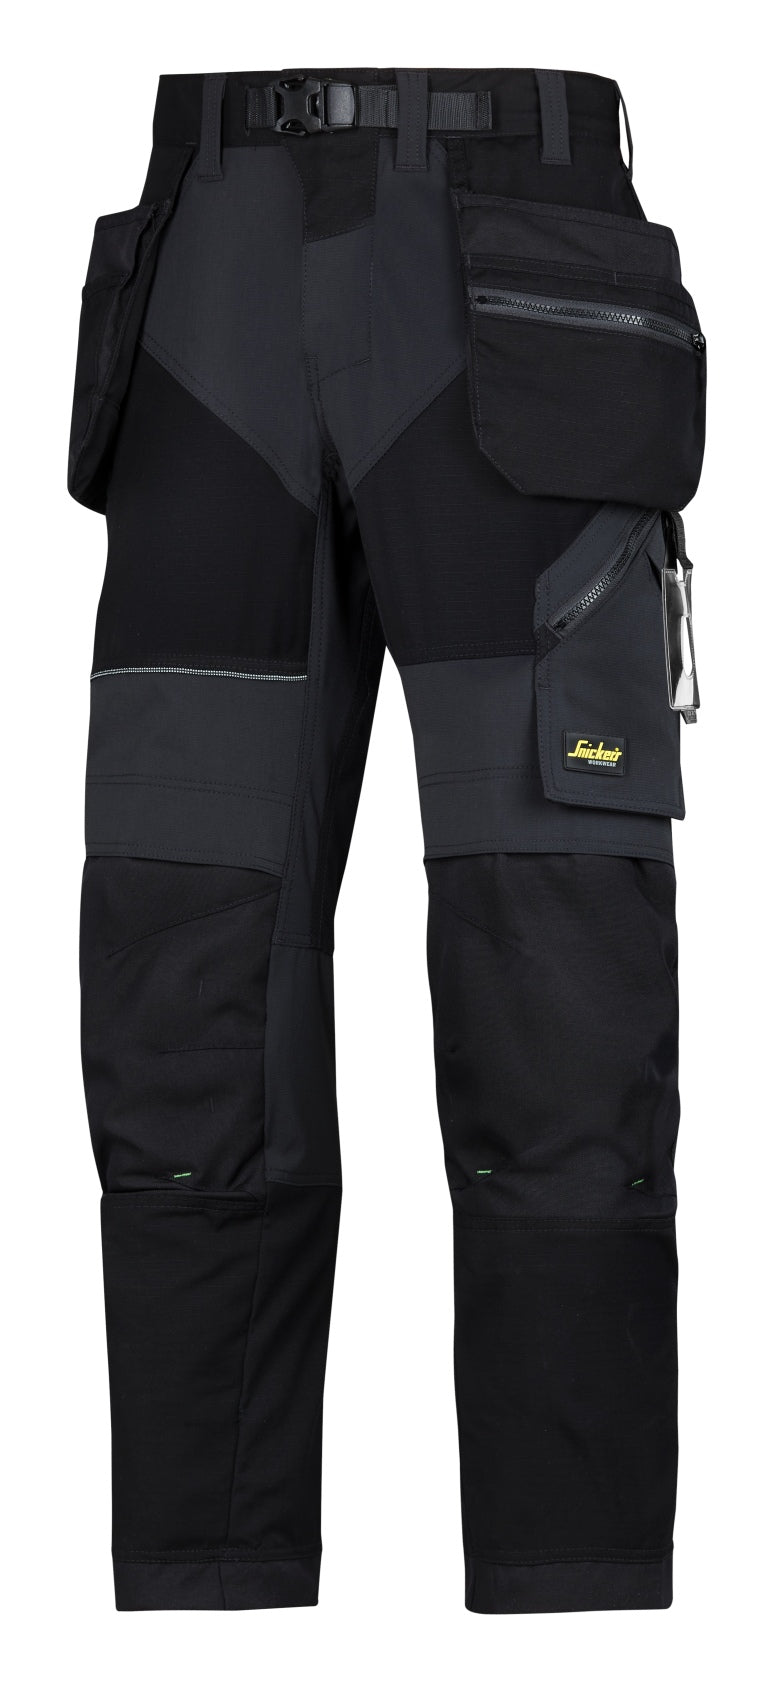 ad2a90640 Snickers 6902 Flexi Work Trousers+ Holster Pockets Engineering Agencies